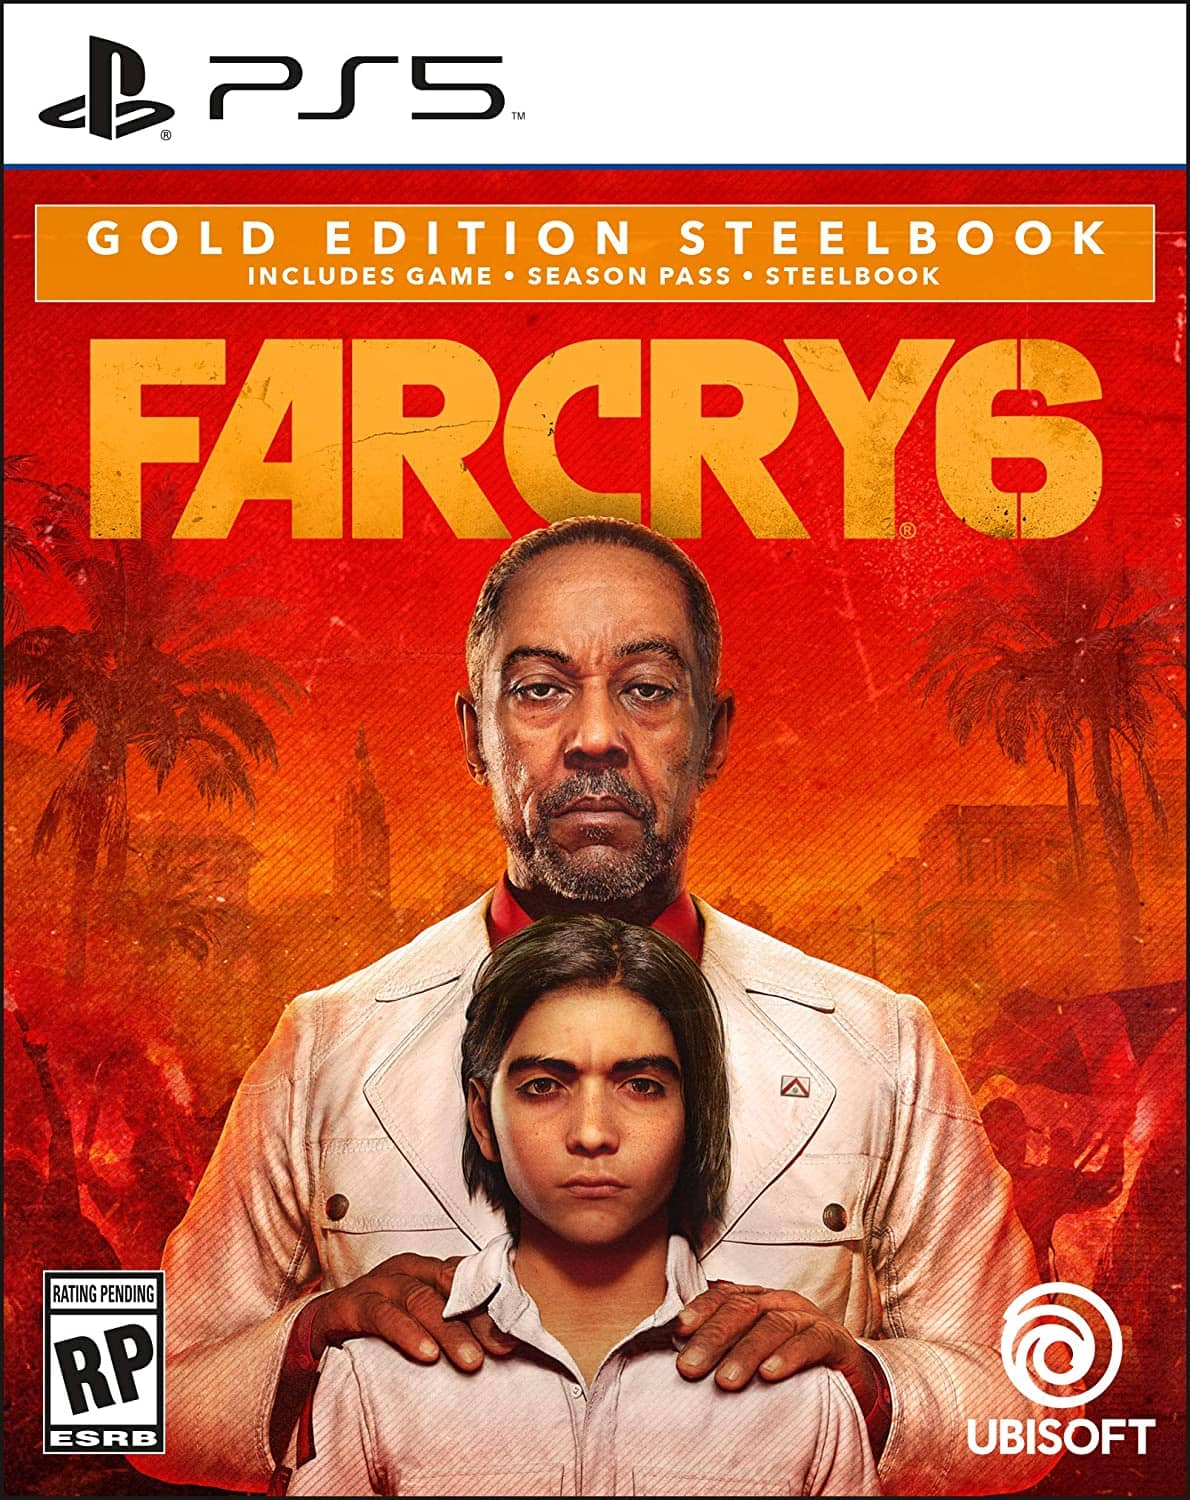 PRICE MISTAKE: Far Cry 6 (PS5) - Gold Steelbook Edition - $59.99